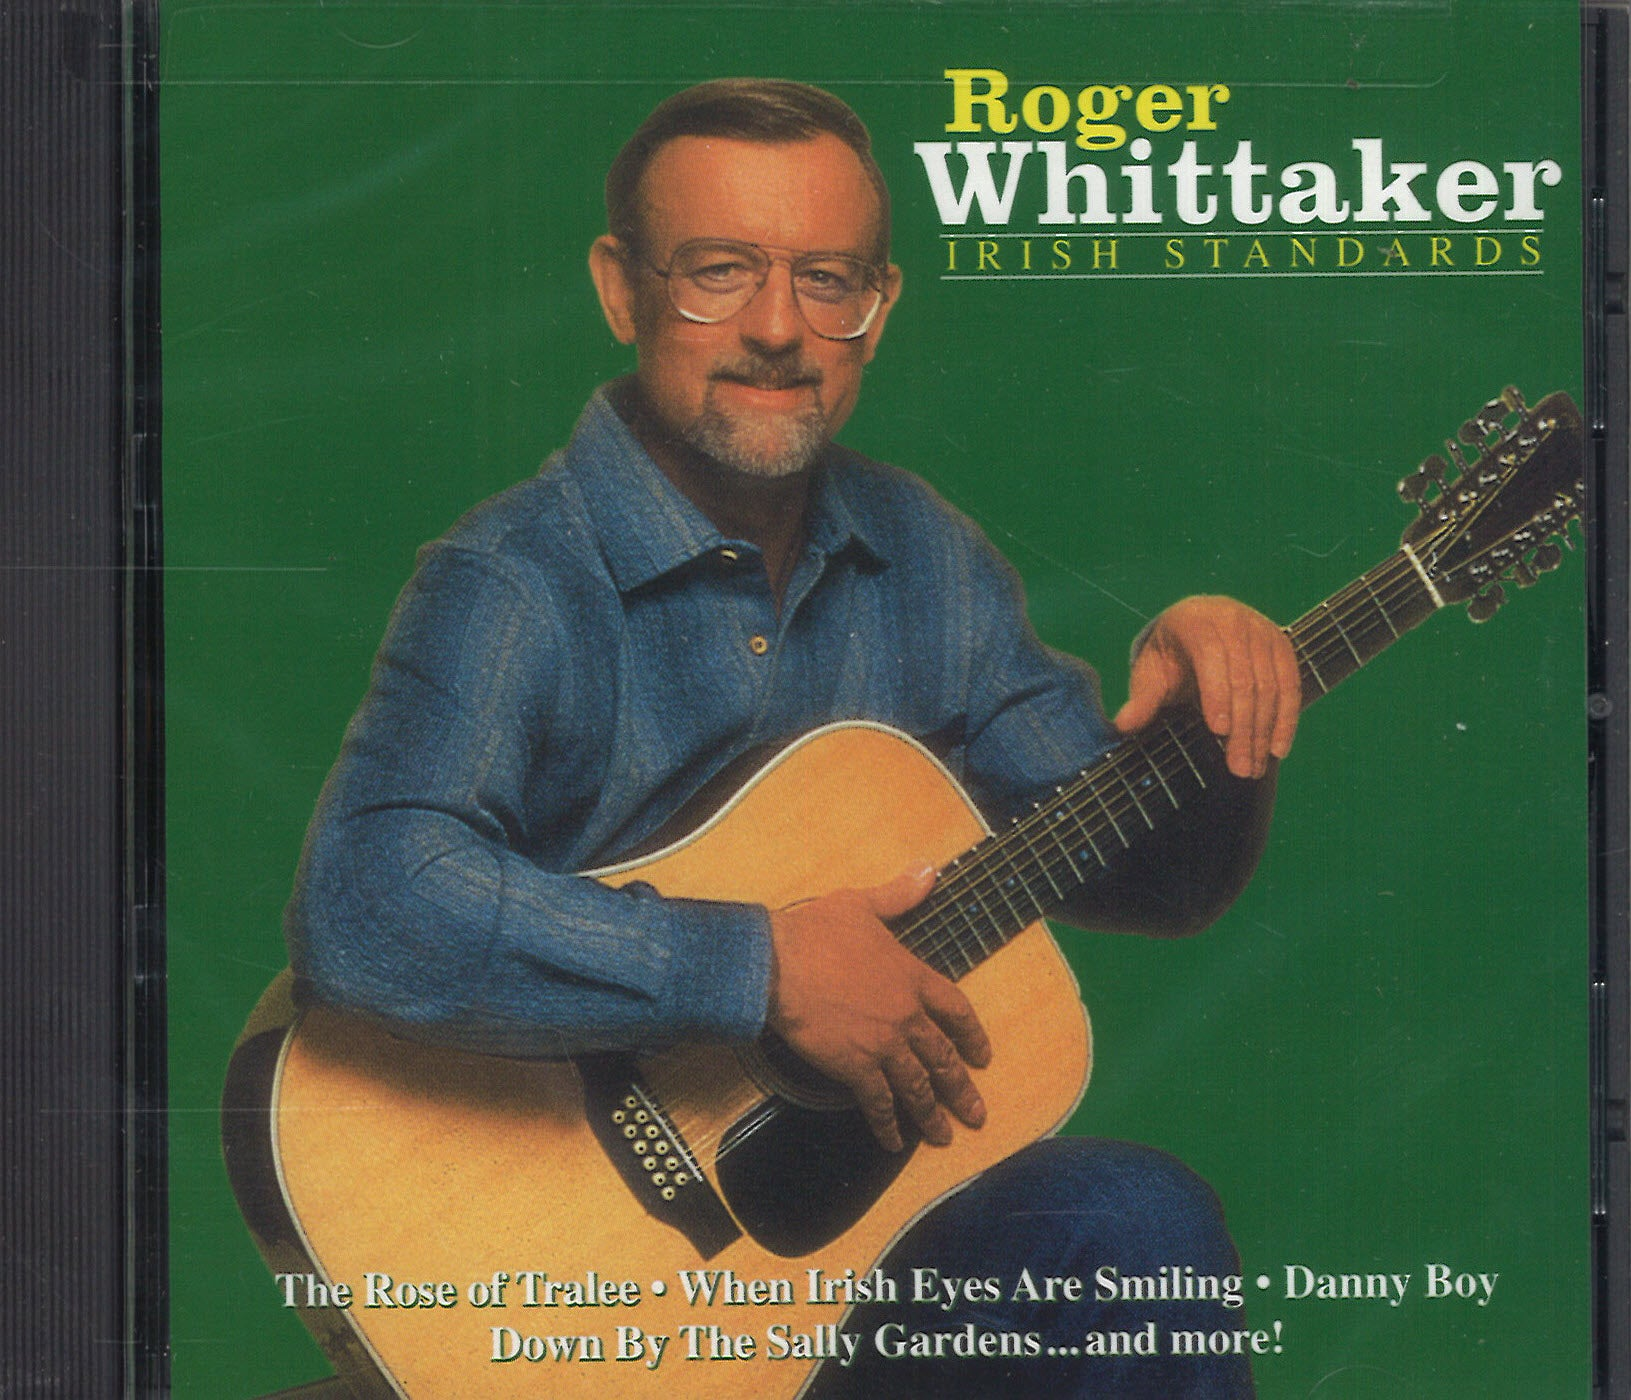 Roger Whittaker Irish Standards